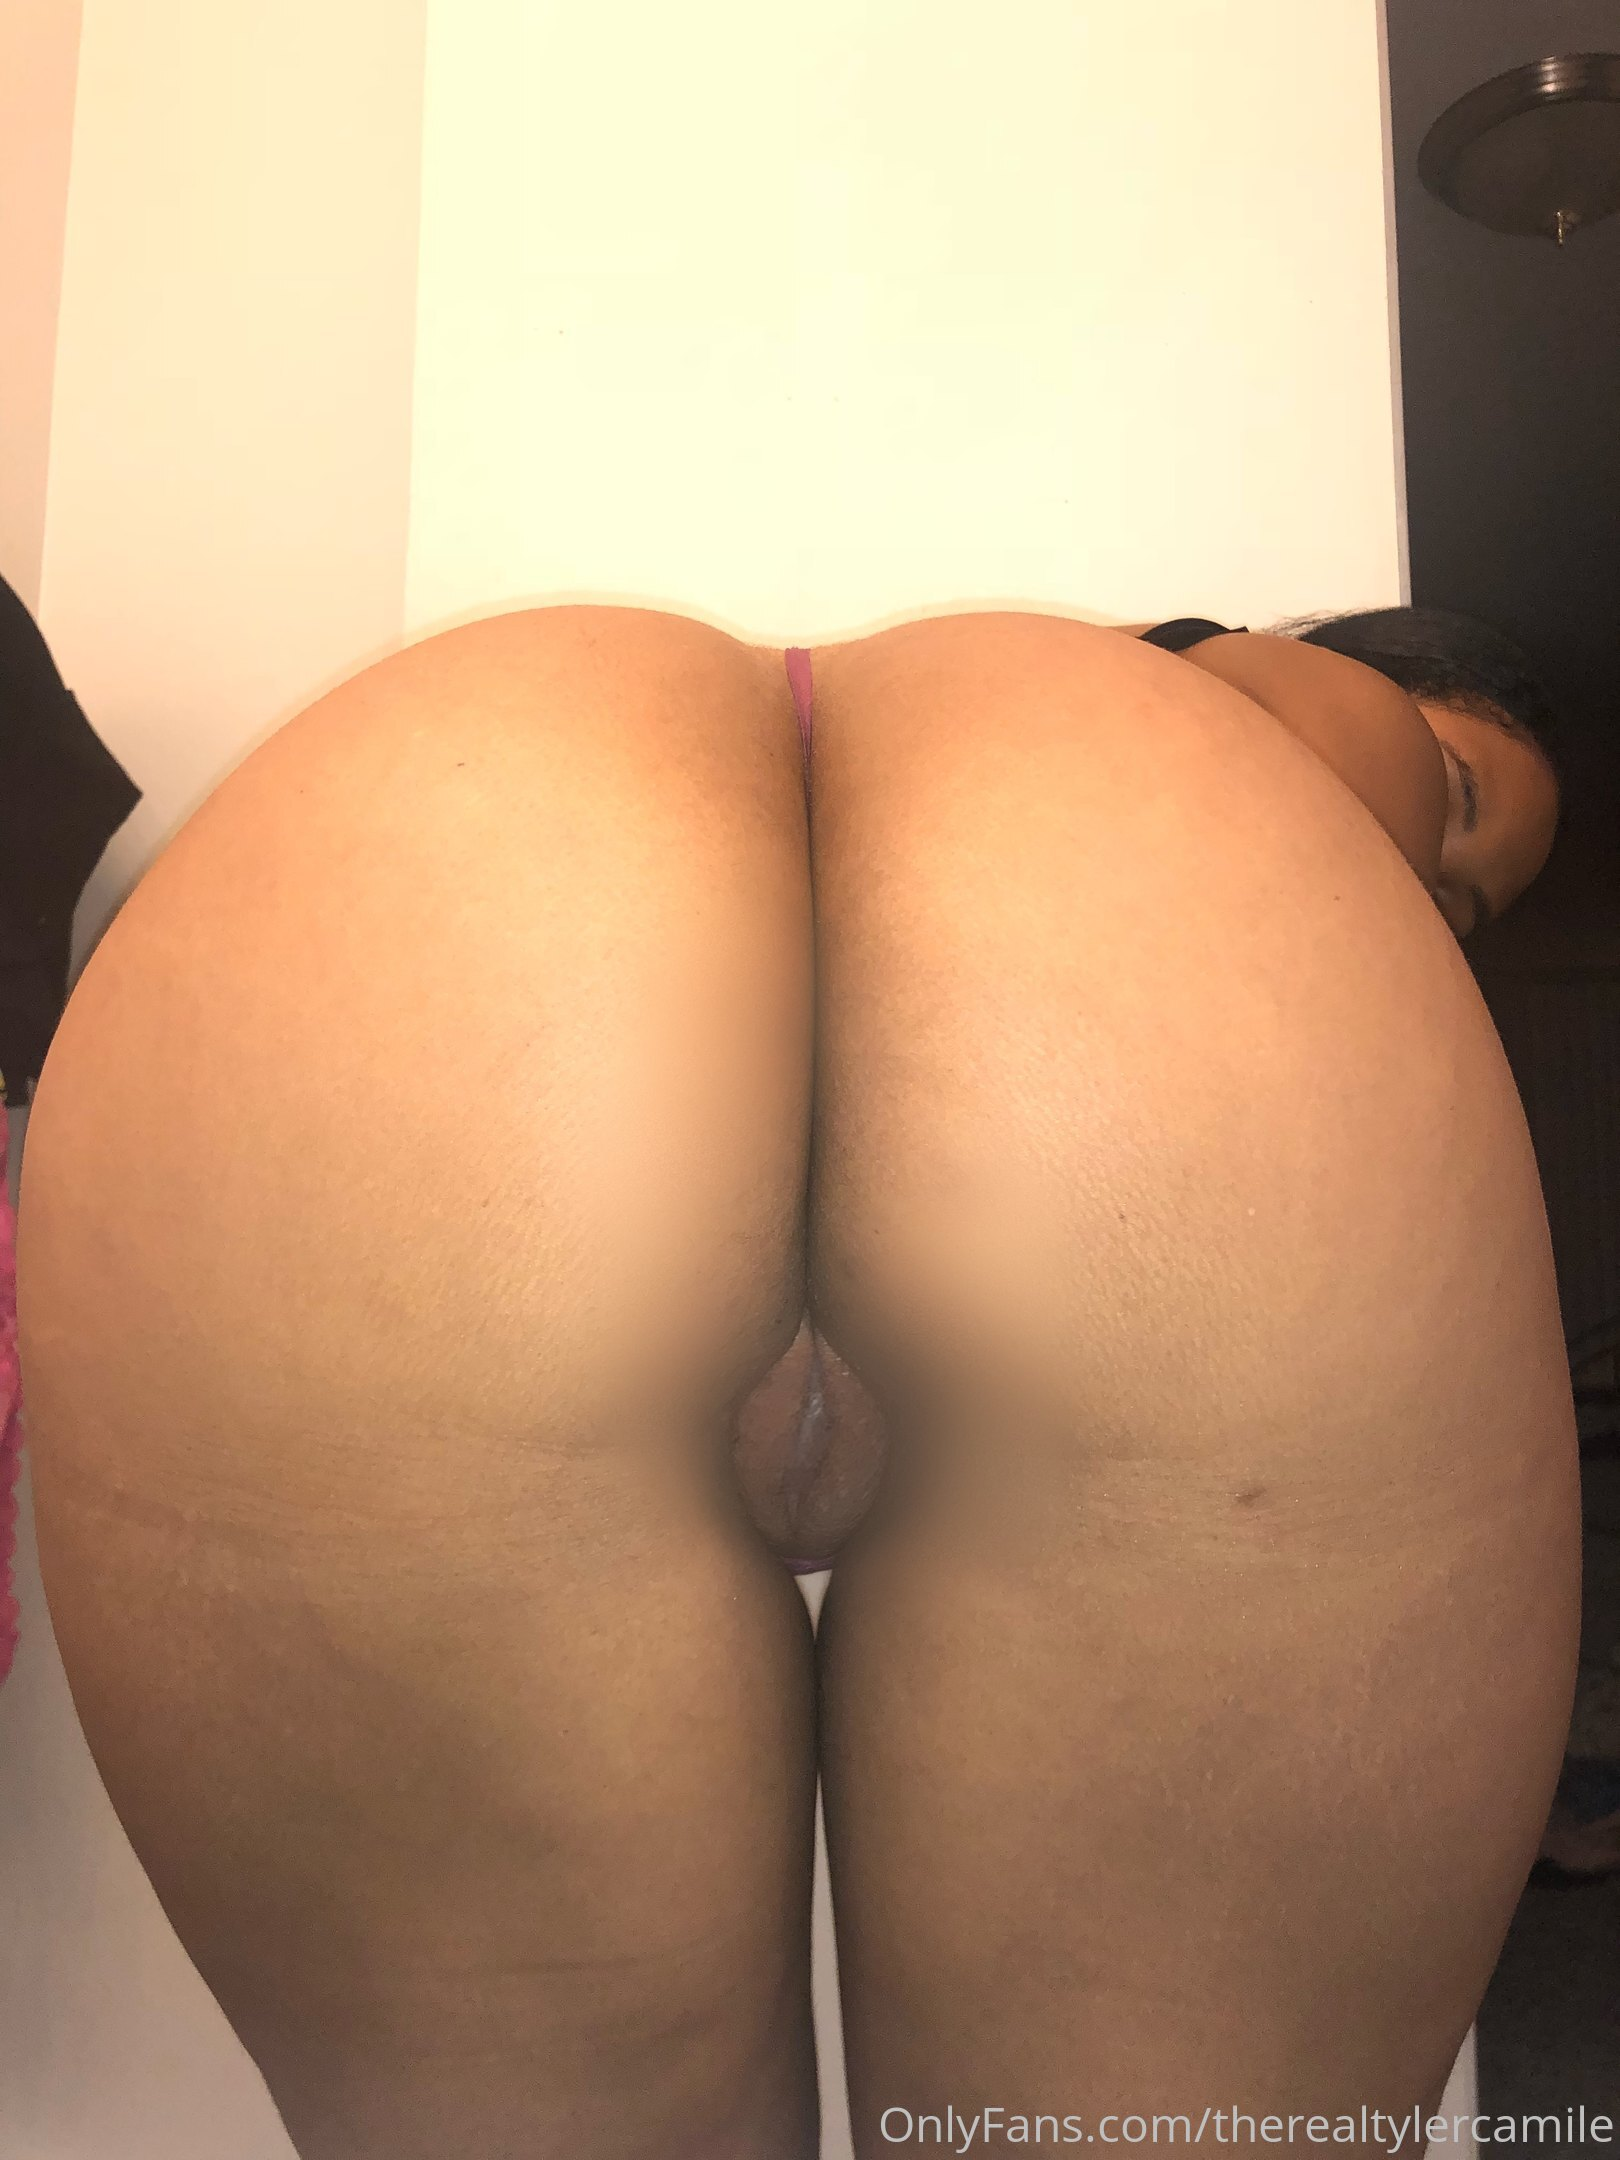 Onlyfans, Tyler Camille 0016